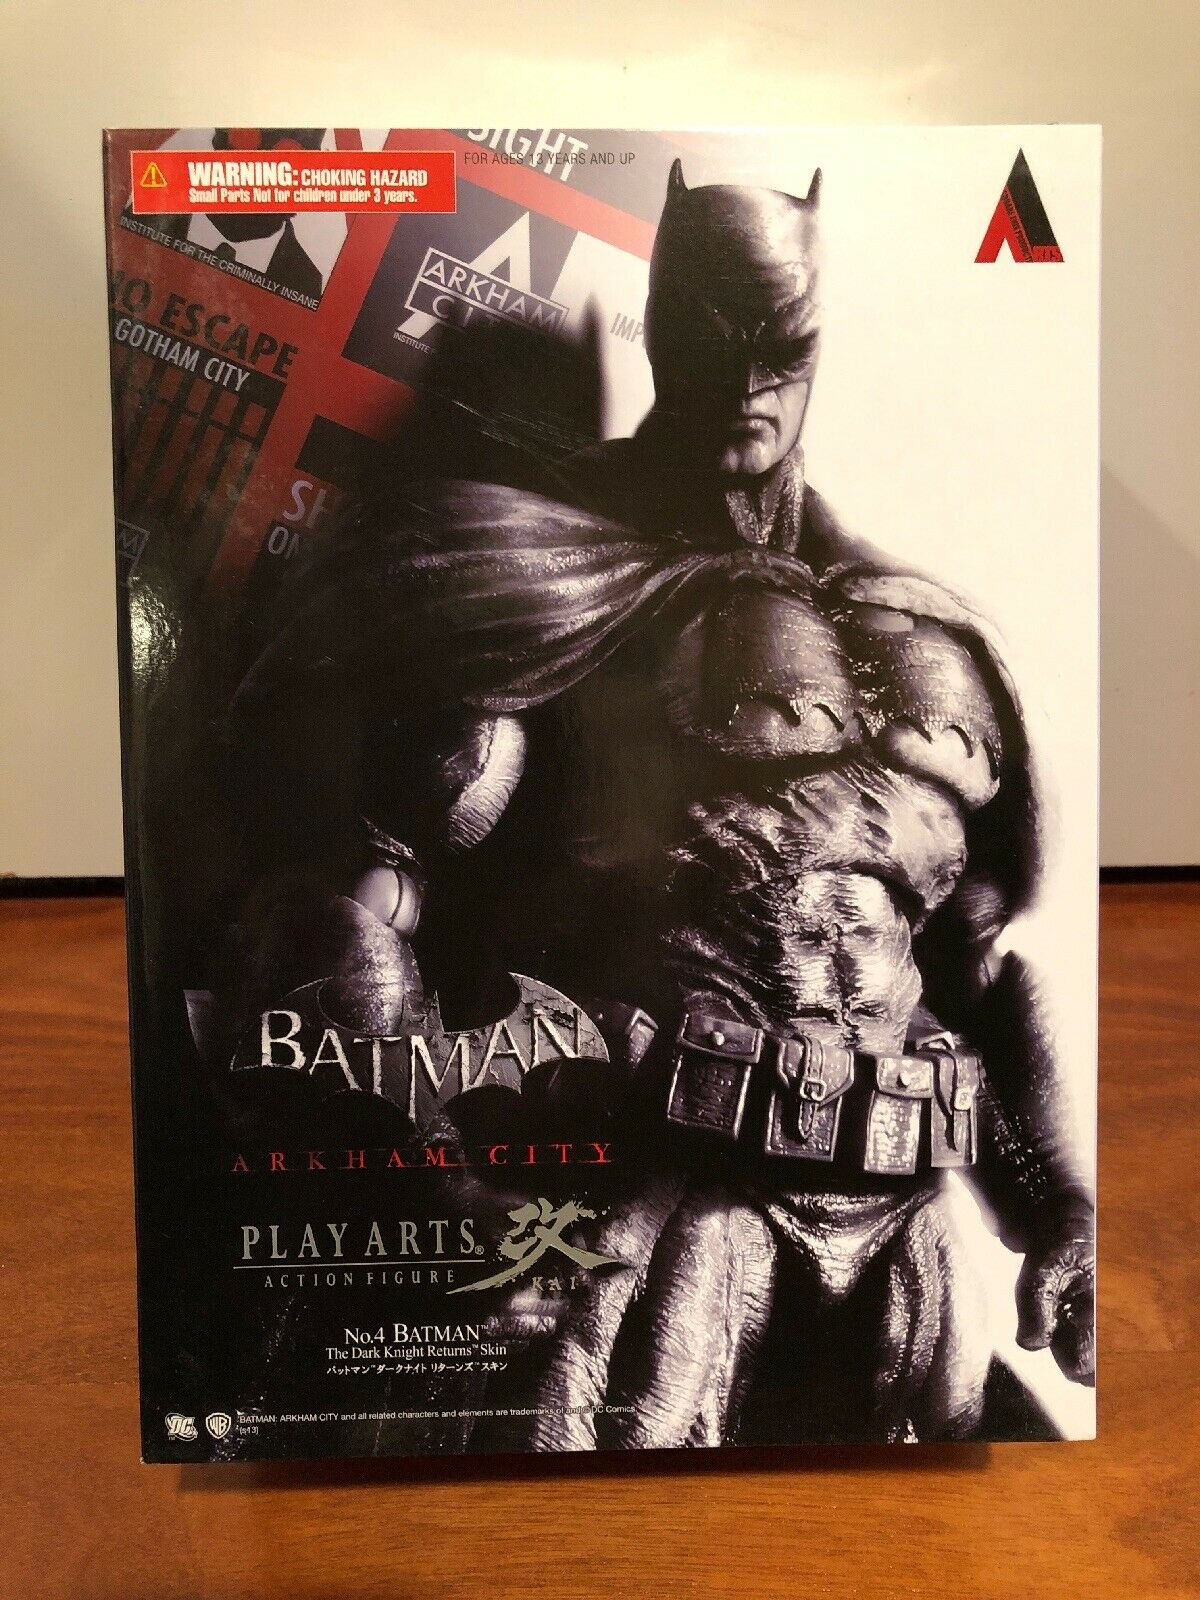 BATMAN ARKHAM CITY (DARK KNIGHT RETURNS, UNOPENED) PLAYARTS KAI (DC,Square Enix)